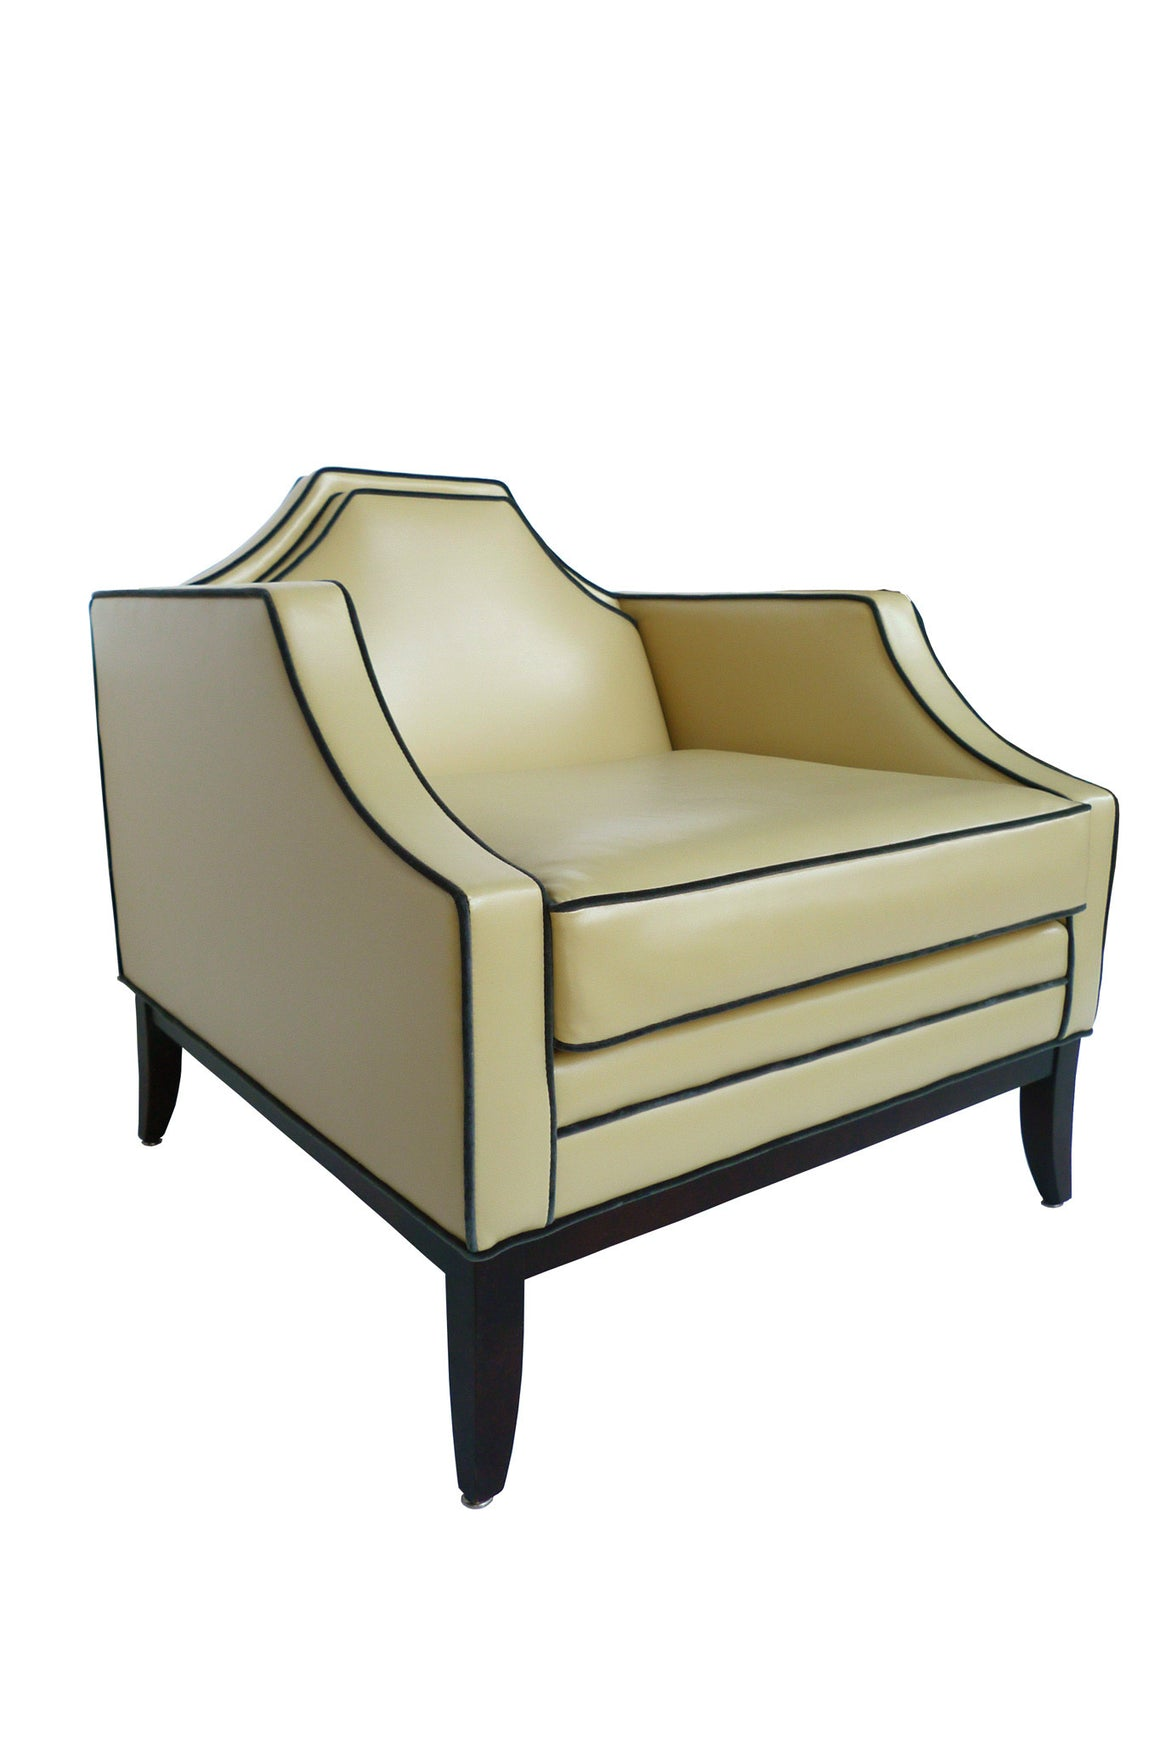 Yellow Arm Chair in the Style of David Hicks